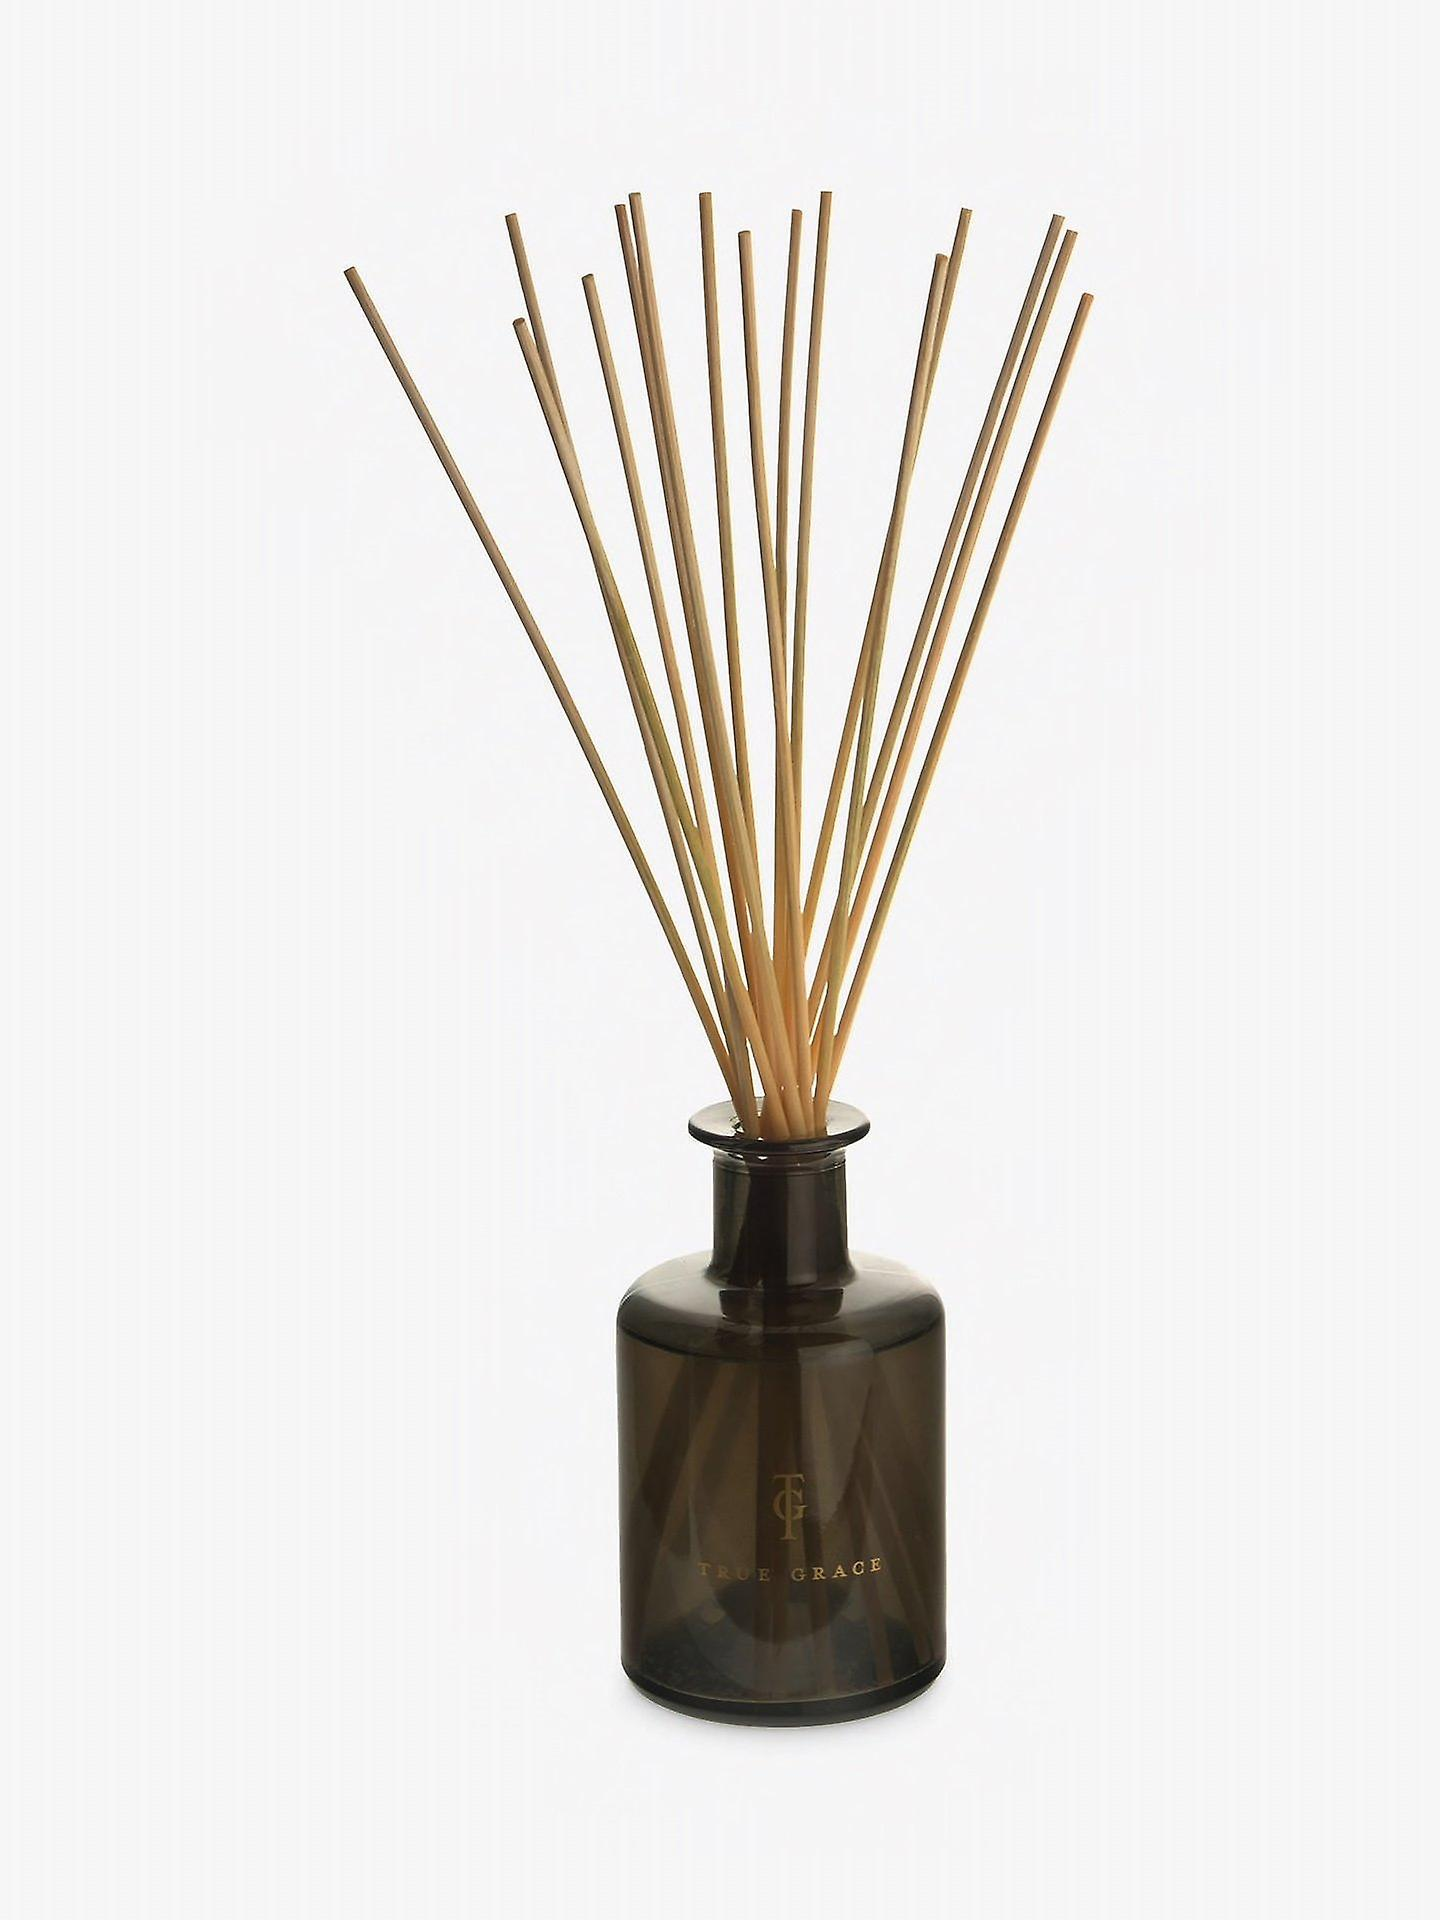 Manor room scent diffuser with rod sacistry - sacristy 250ml